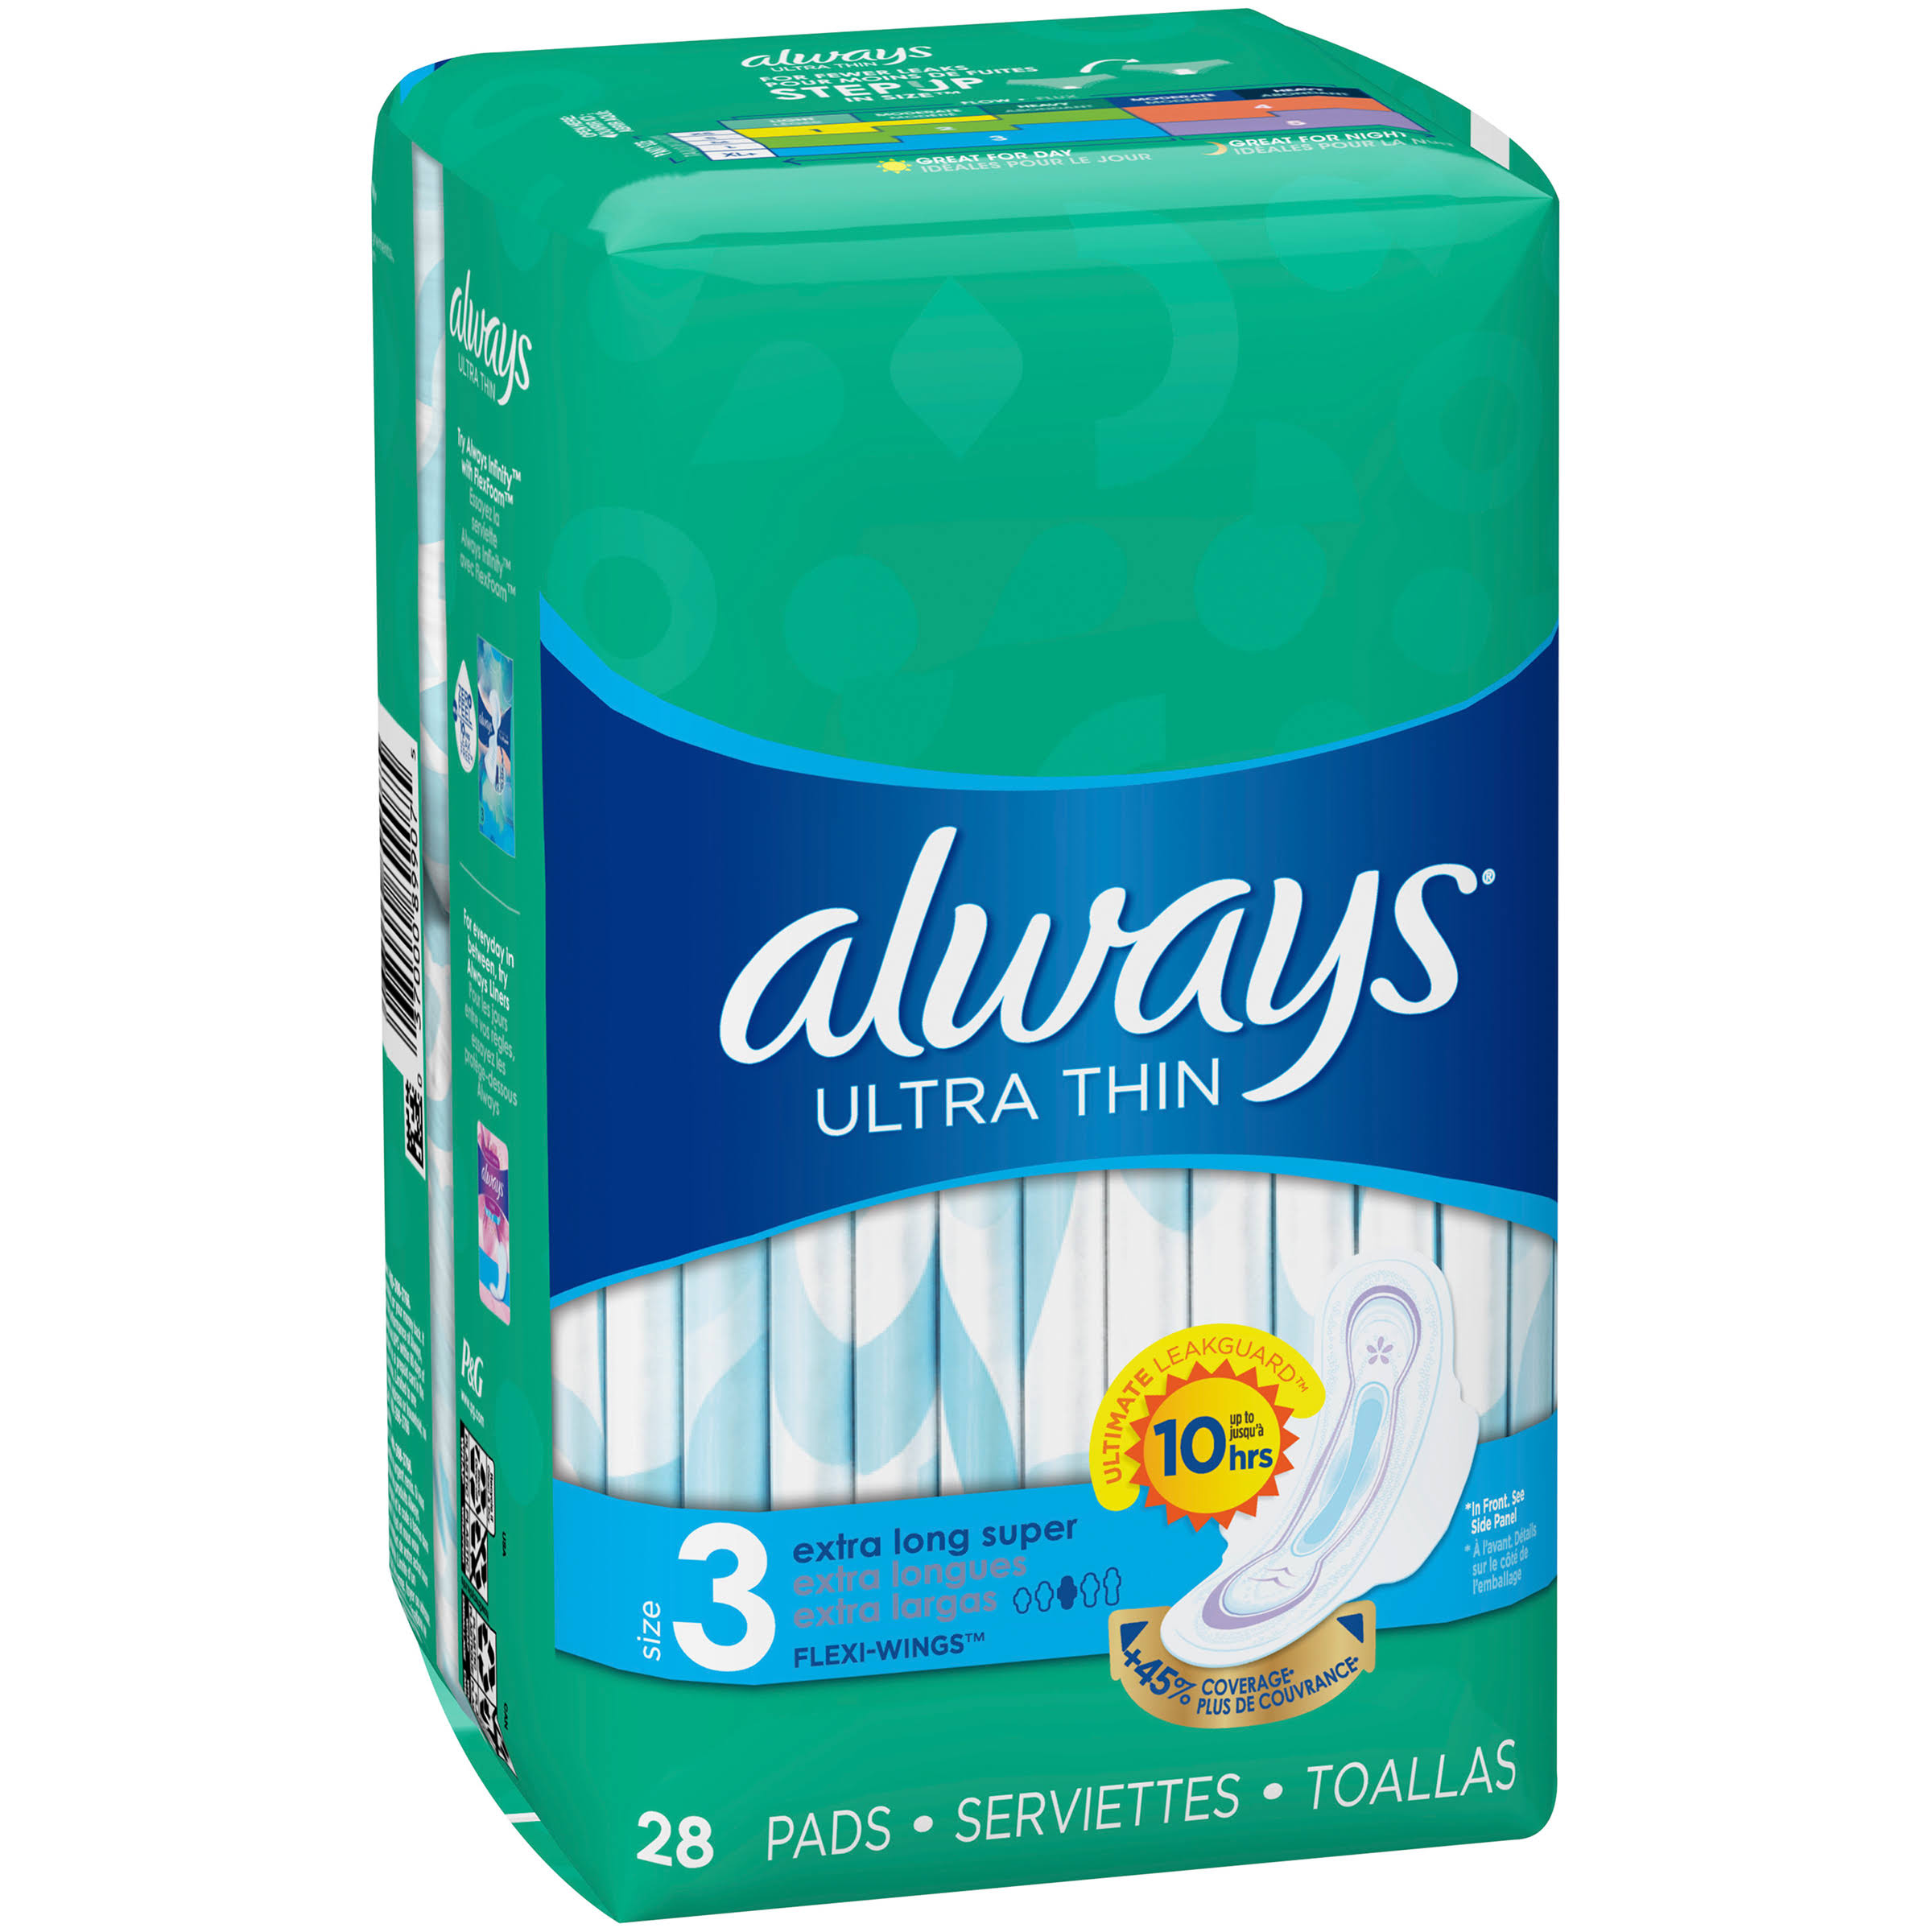 Always Ultra Thin Pads - 28 Pads, Size 3